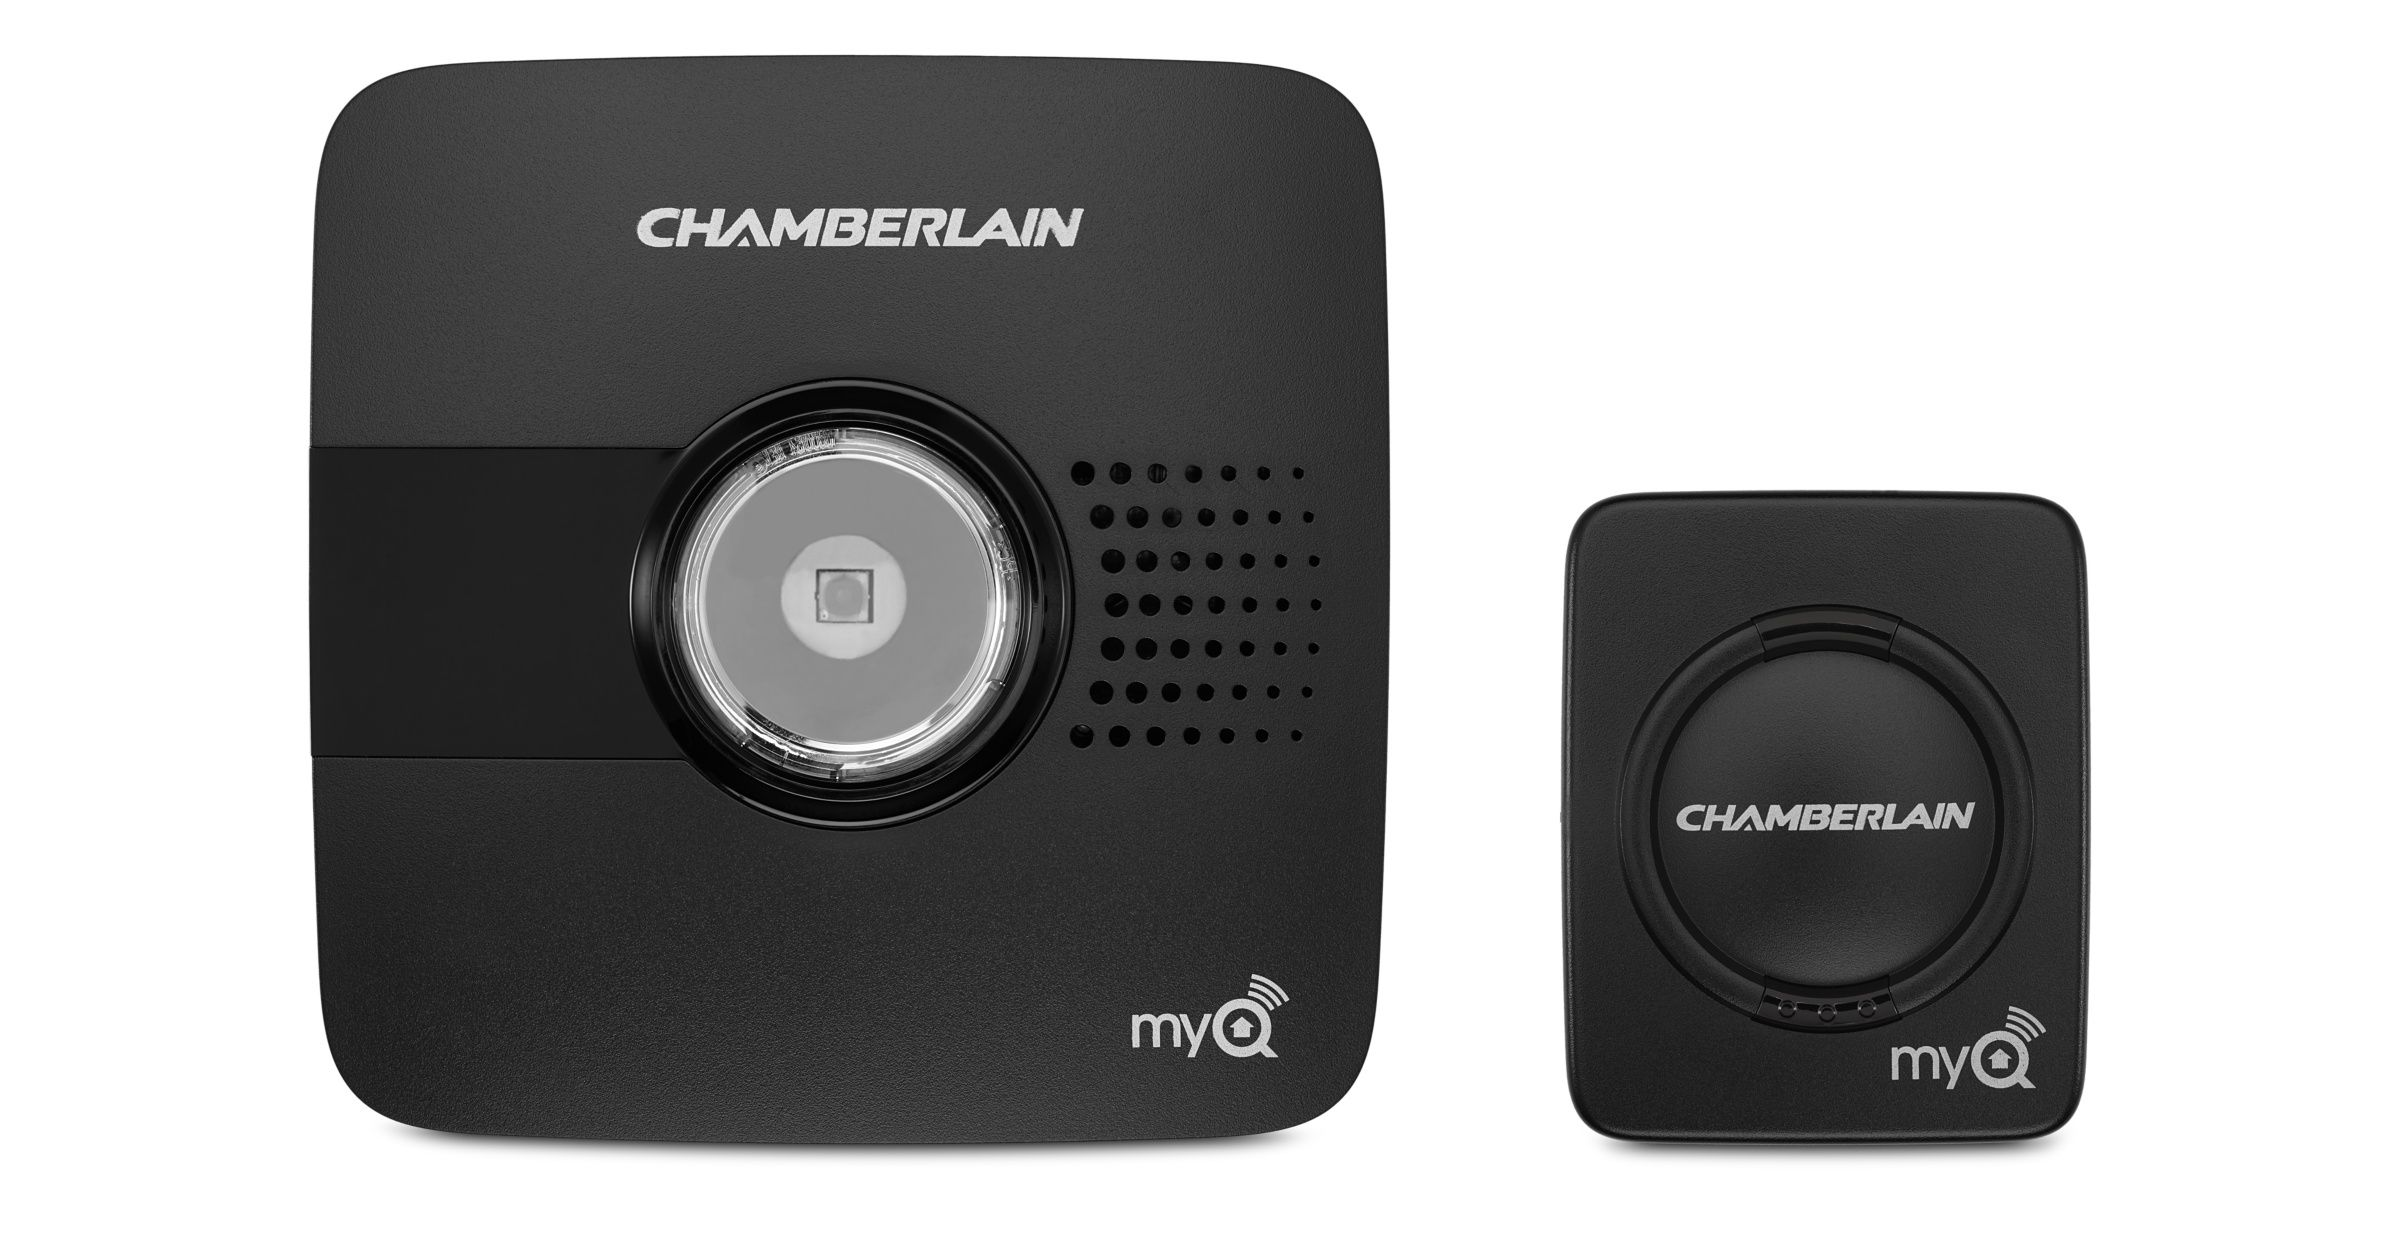 With Chamberlain Myq Garage Your Iphone The Free Myq App Wi Fi And Any Compatible Garage Door Opener You Re Abl Garage Door Controller Home Automation Myq